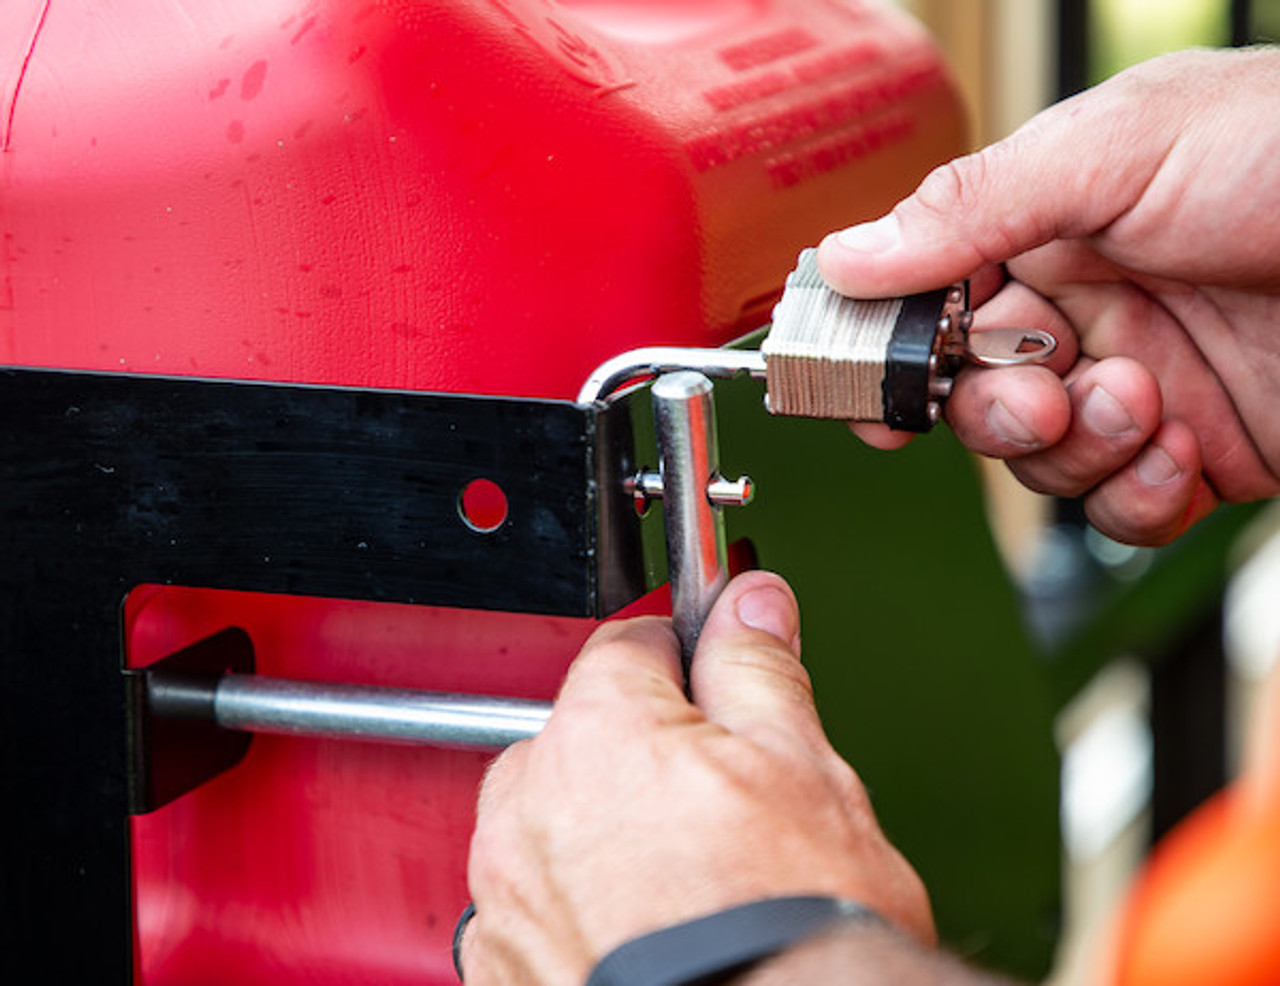 Buyers LT32 Locking Gas Container Rack For Landscaping Trailers, Garages, Sheds, Construction Vehicles Picture # 5